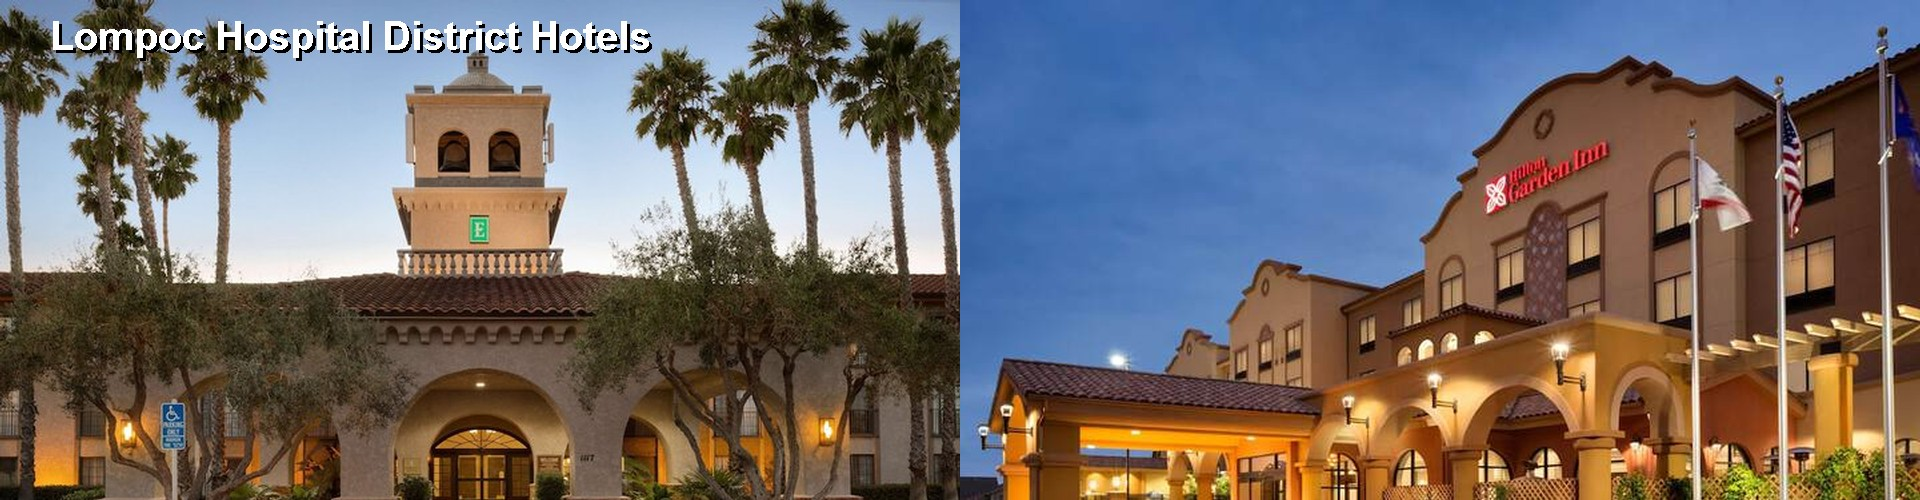 5 Best Hotels near Lompoc Hospital District